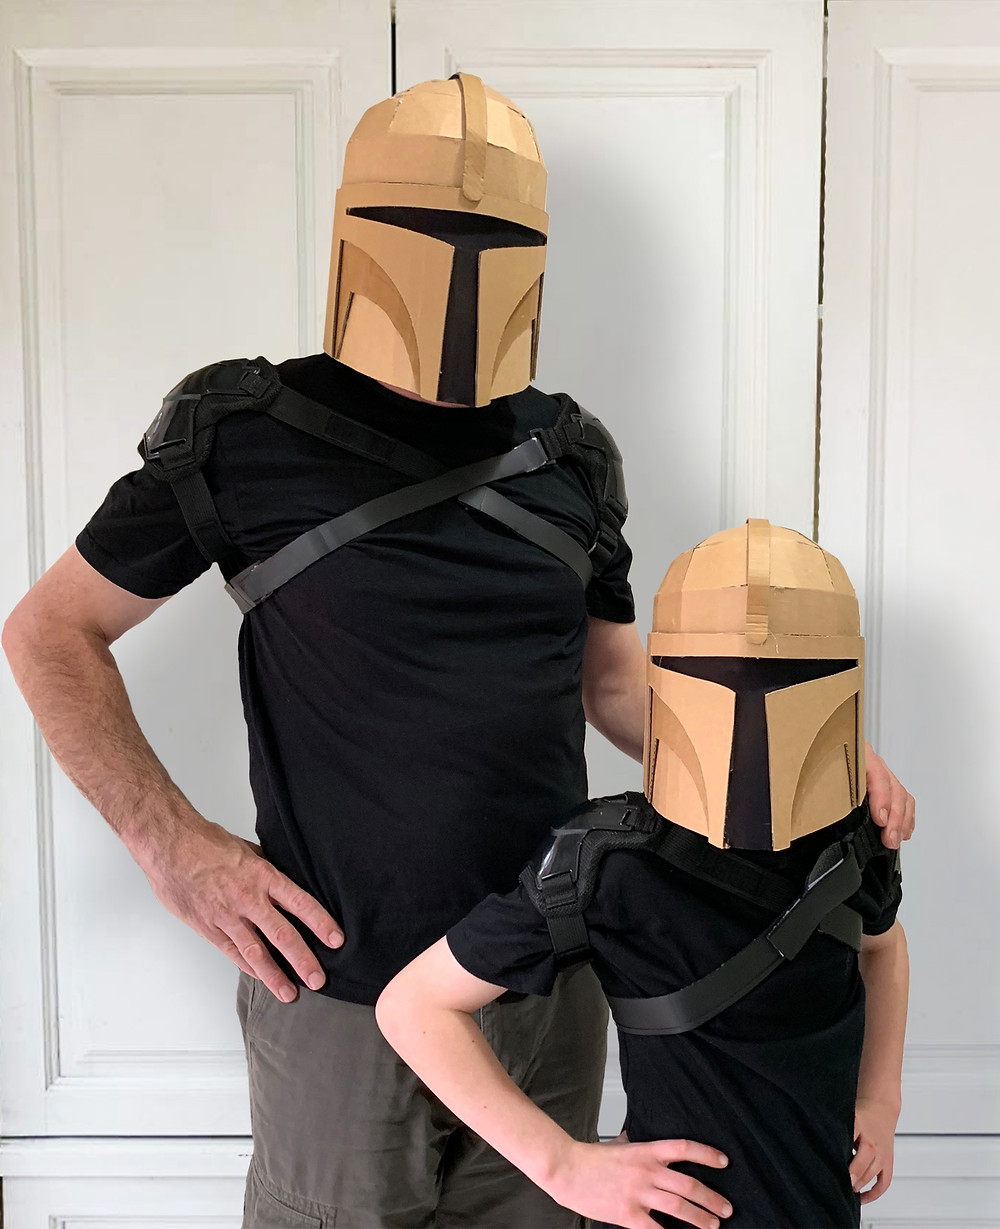 Bounty Hunter helmet made out cardboard from a downloadable template from Zygote Brown Designs